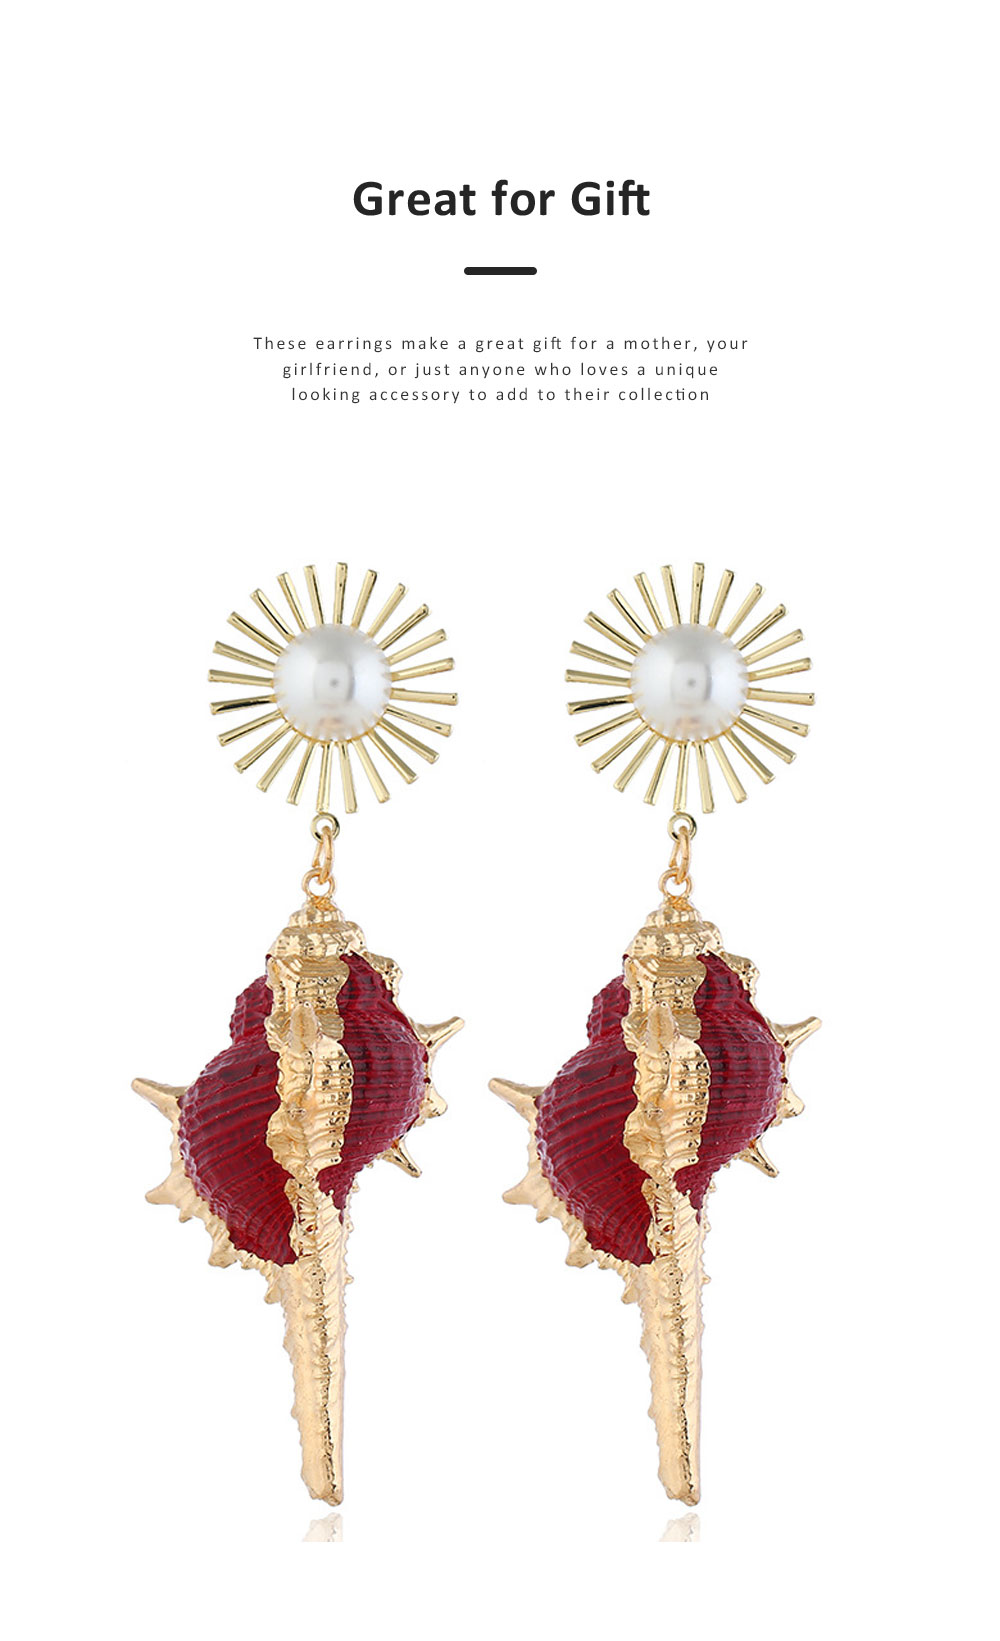 Stylish Seashell Dangle Earrings Conch Design Charming Jewelry Great Gift for Women 5